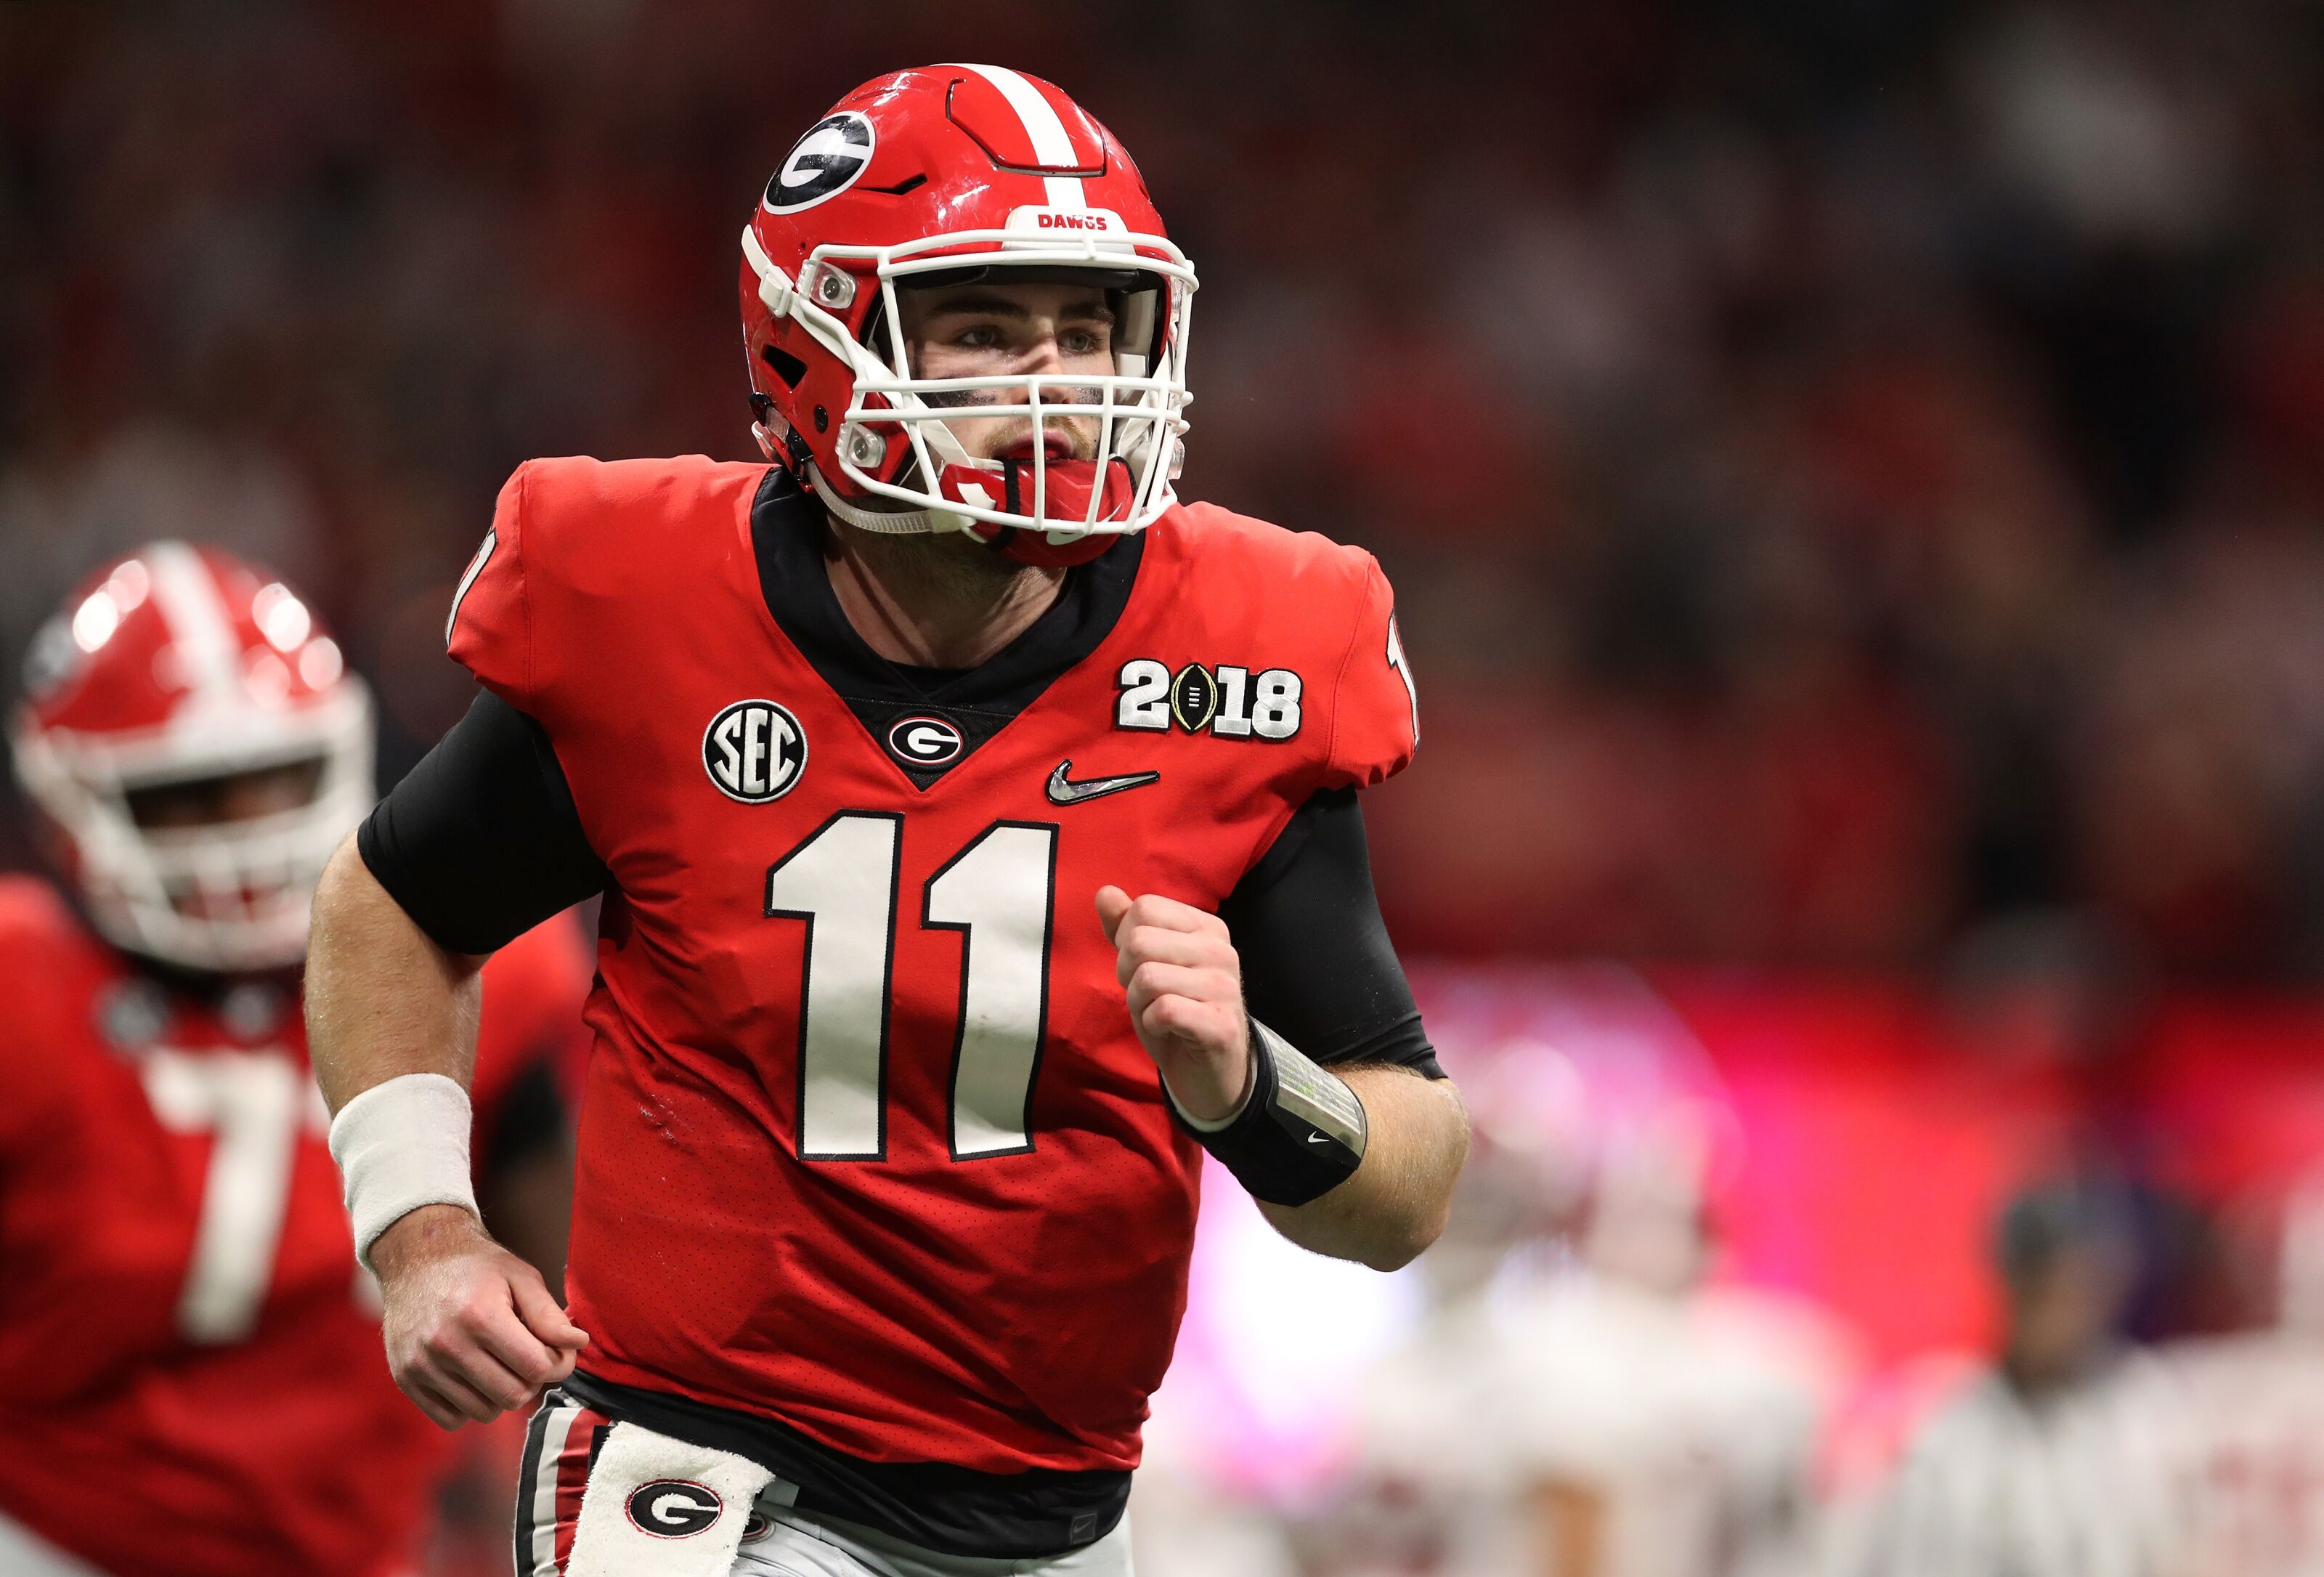 Georgia Football: Game-by-game predictions for 2019